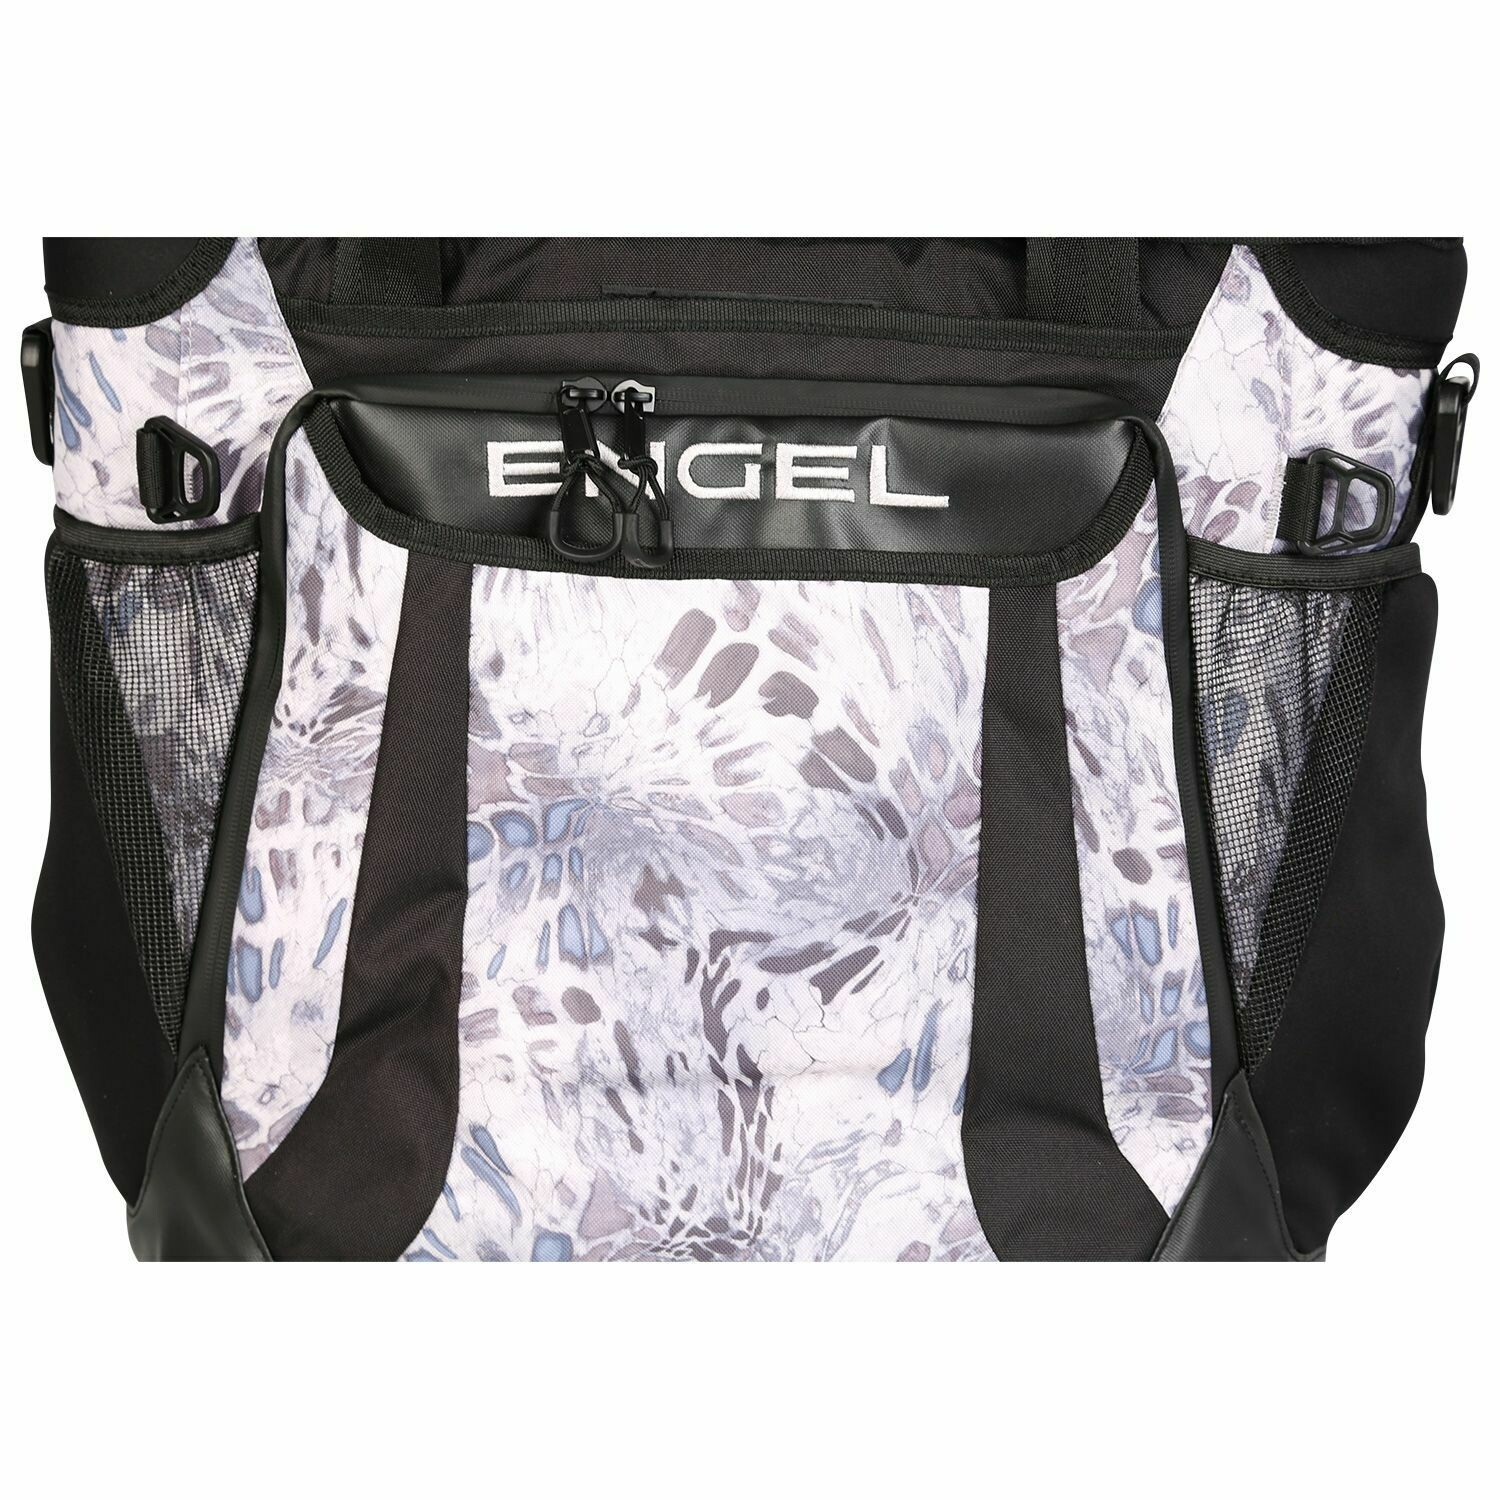 Engel High Performance Backpack Cooler Silver Mist Camo